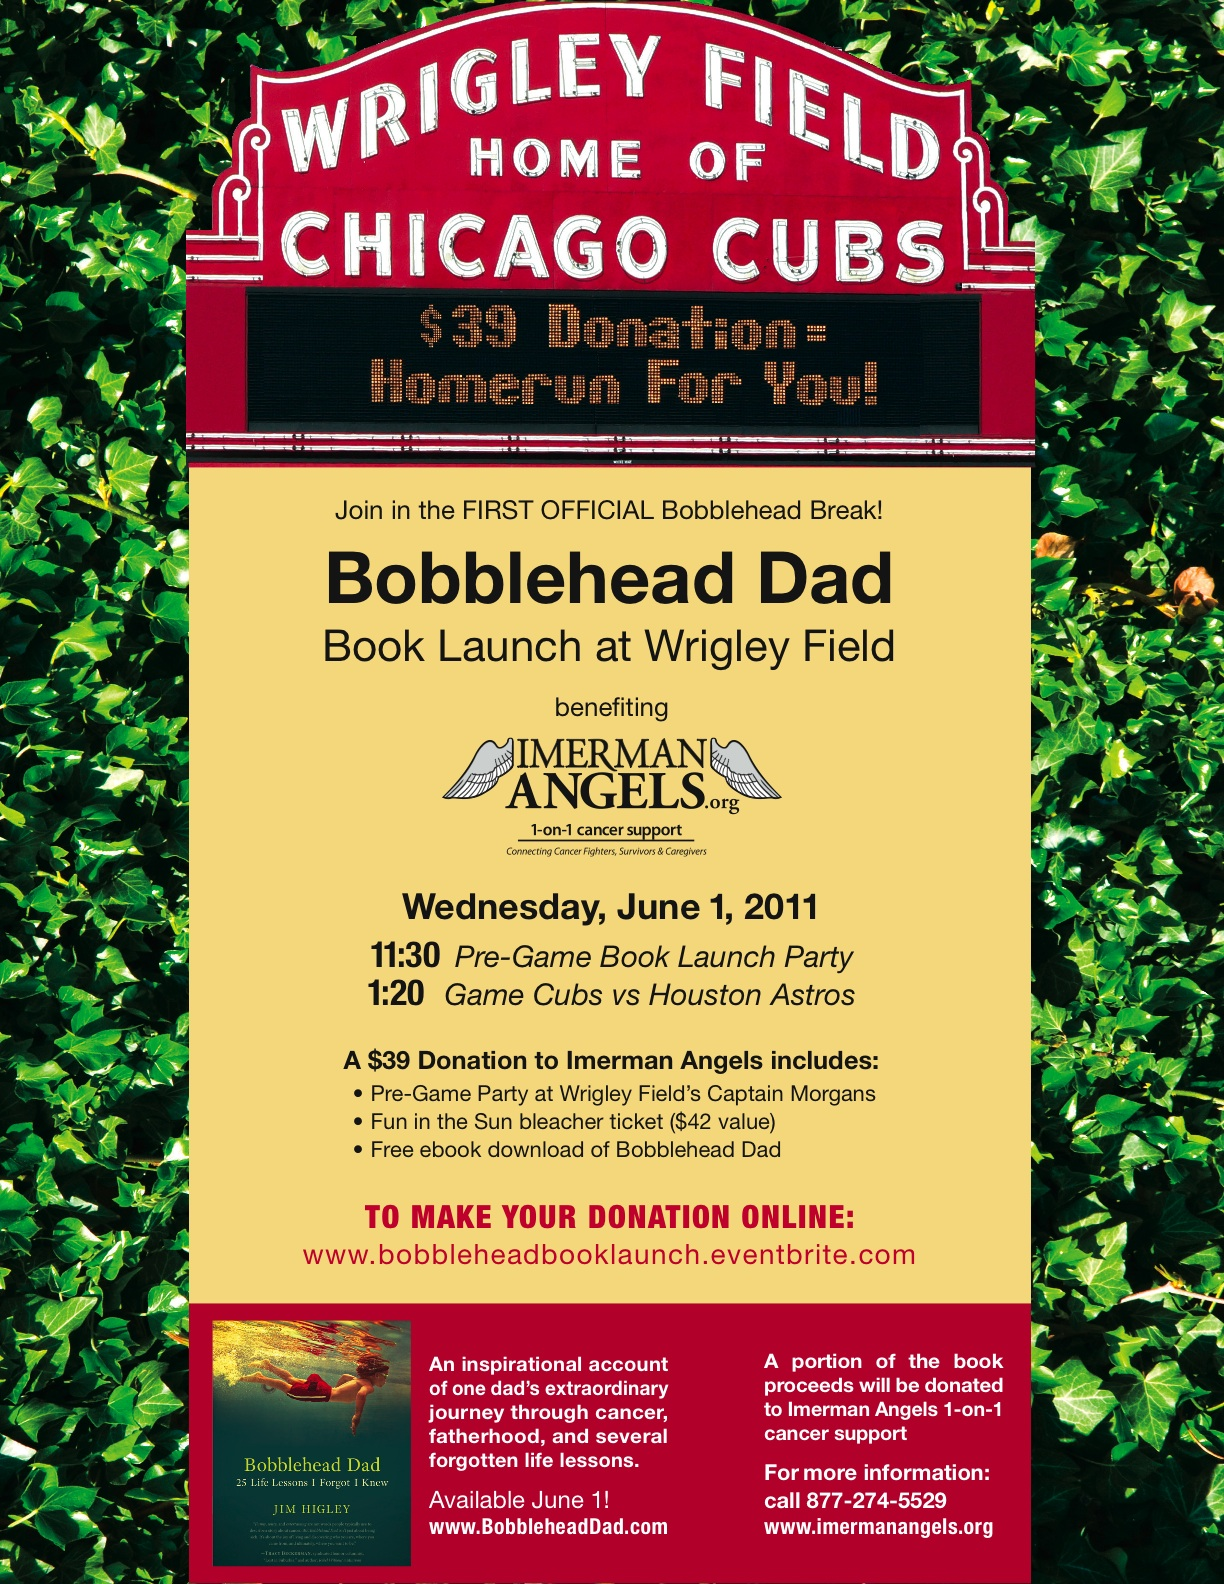 Bobblehead Dad Book Launch at Wrigley Field